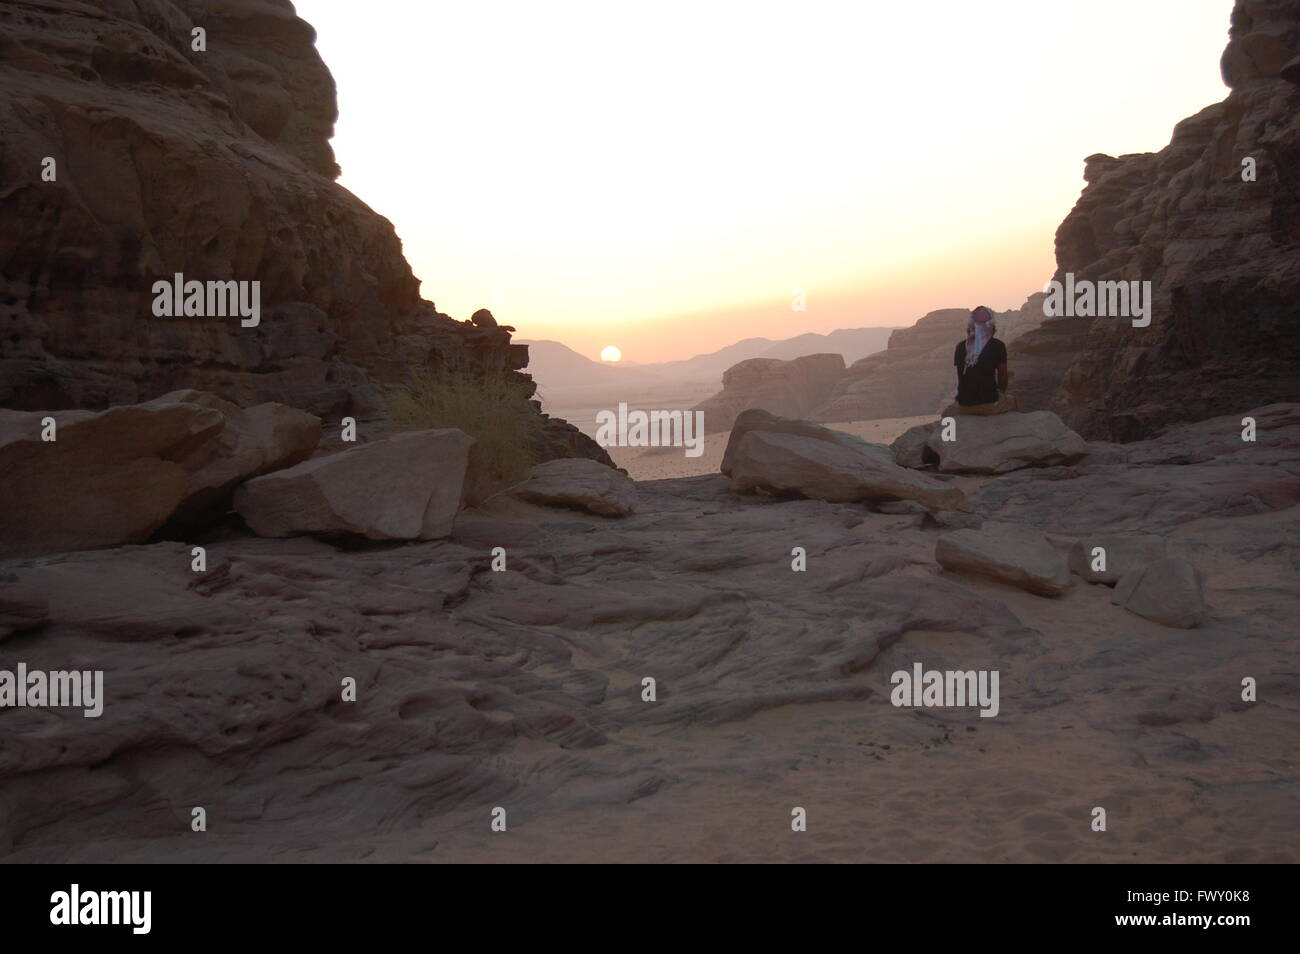 Bedouin man watching the sunrise in Wadi Rum, Jordan - Stock Image